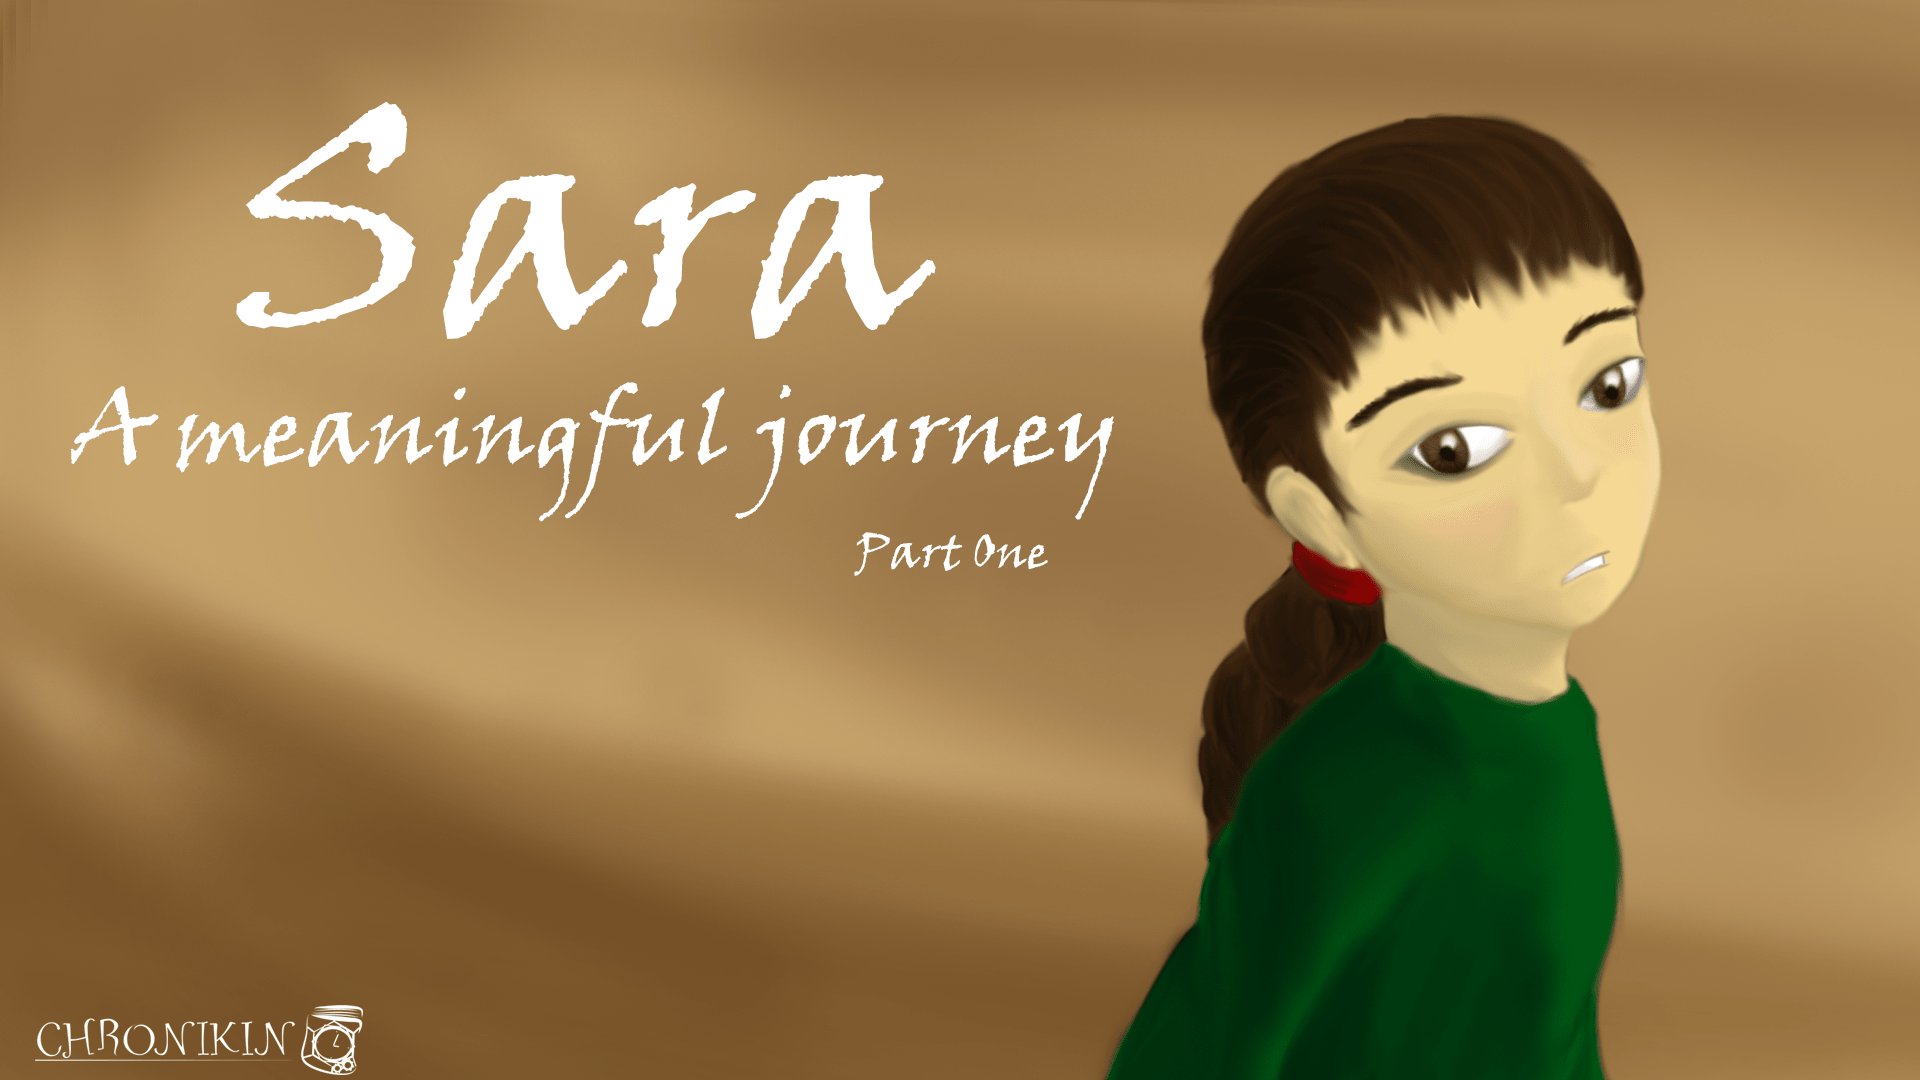 Sara - A meaningful Journey part 1